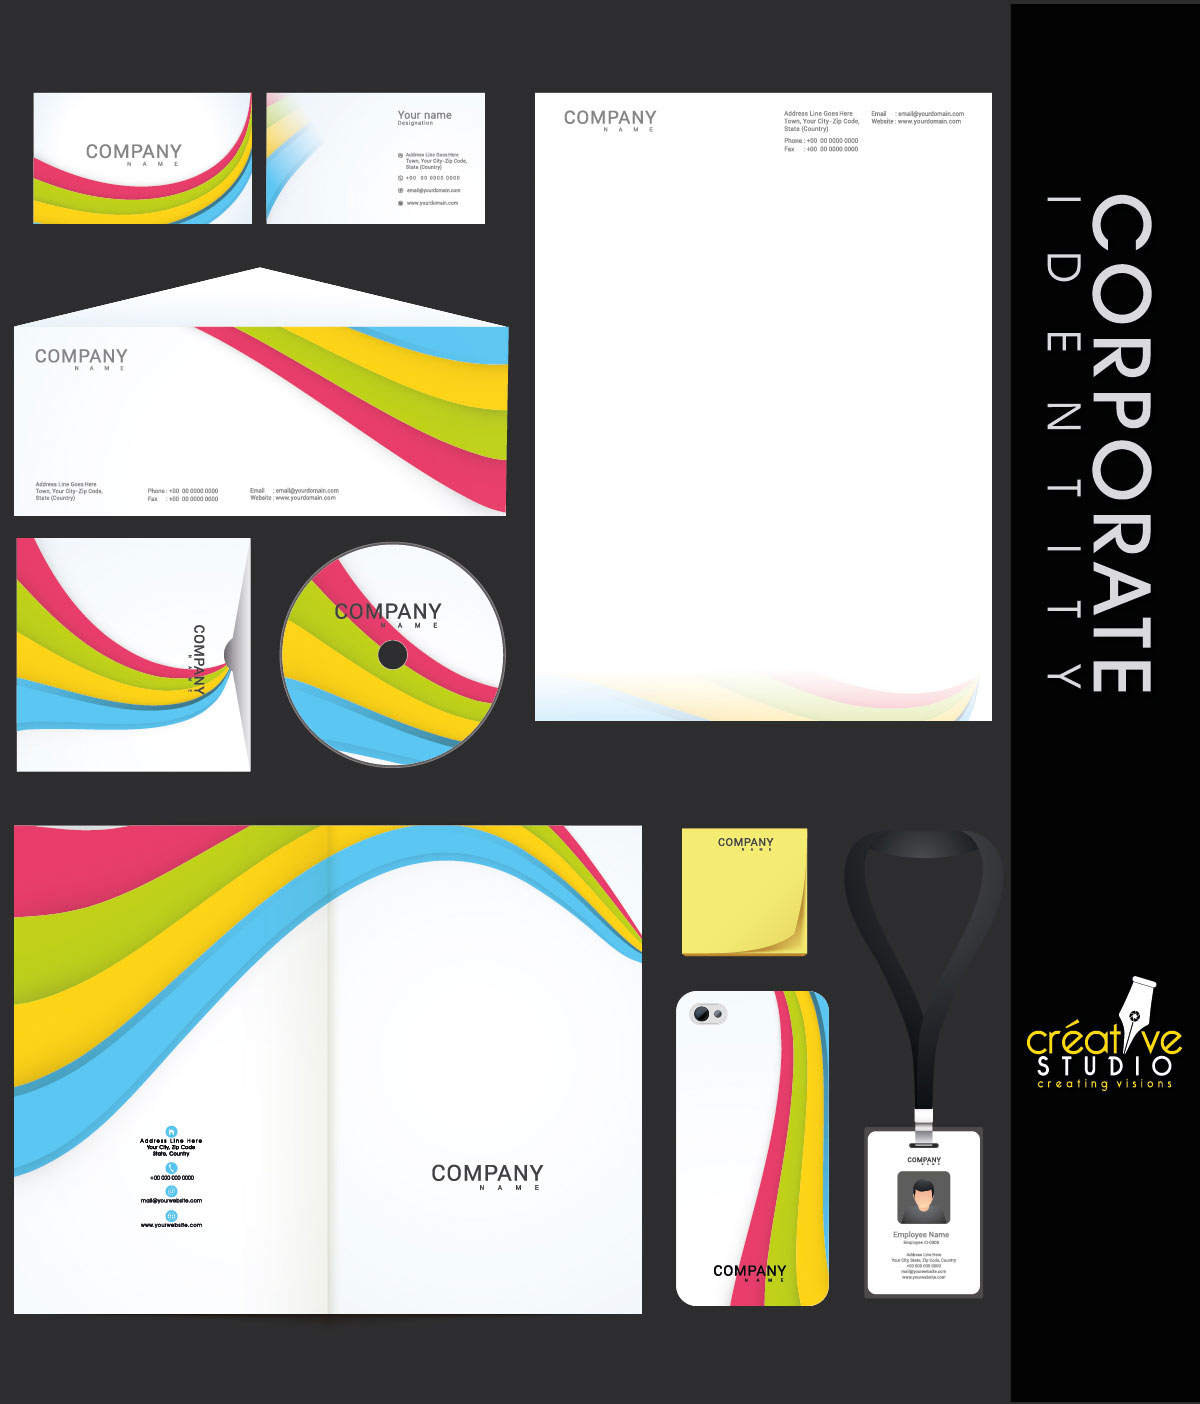 Corporate Identity 4 - PHOTOGRAPHY AND CINEMATOGRAPHY